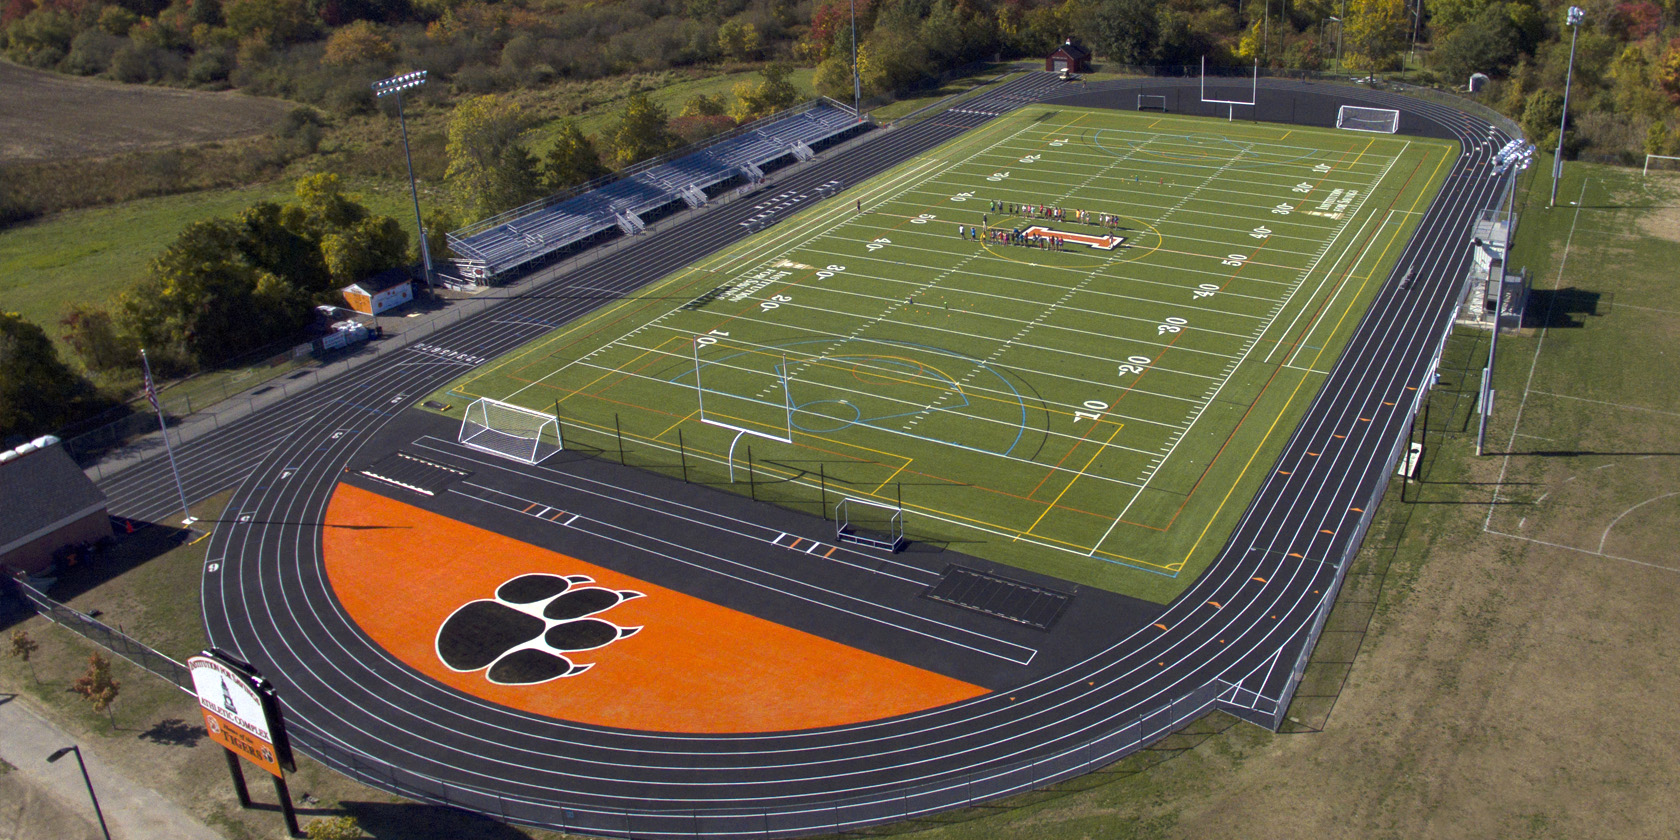 Jack Welch Stadium, Ipswich High School, Massachusetts